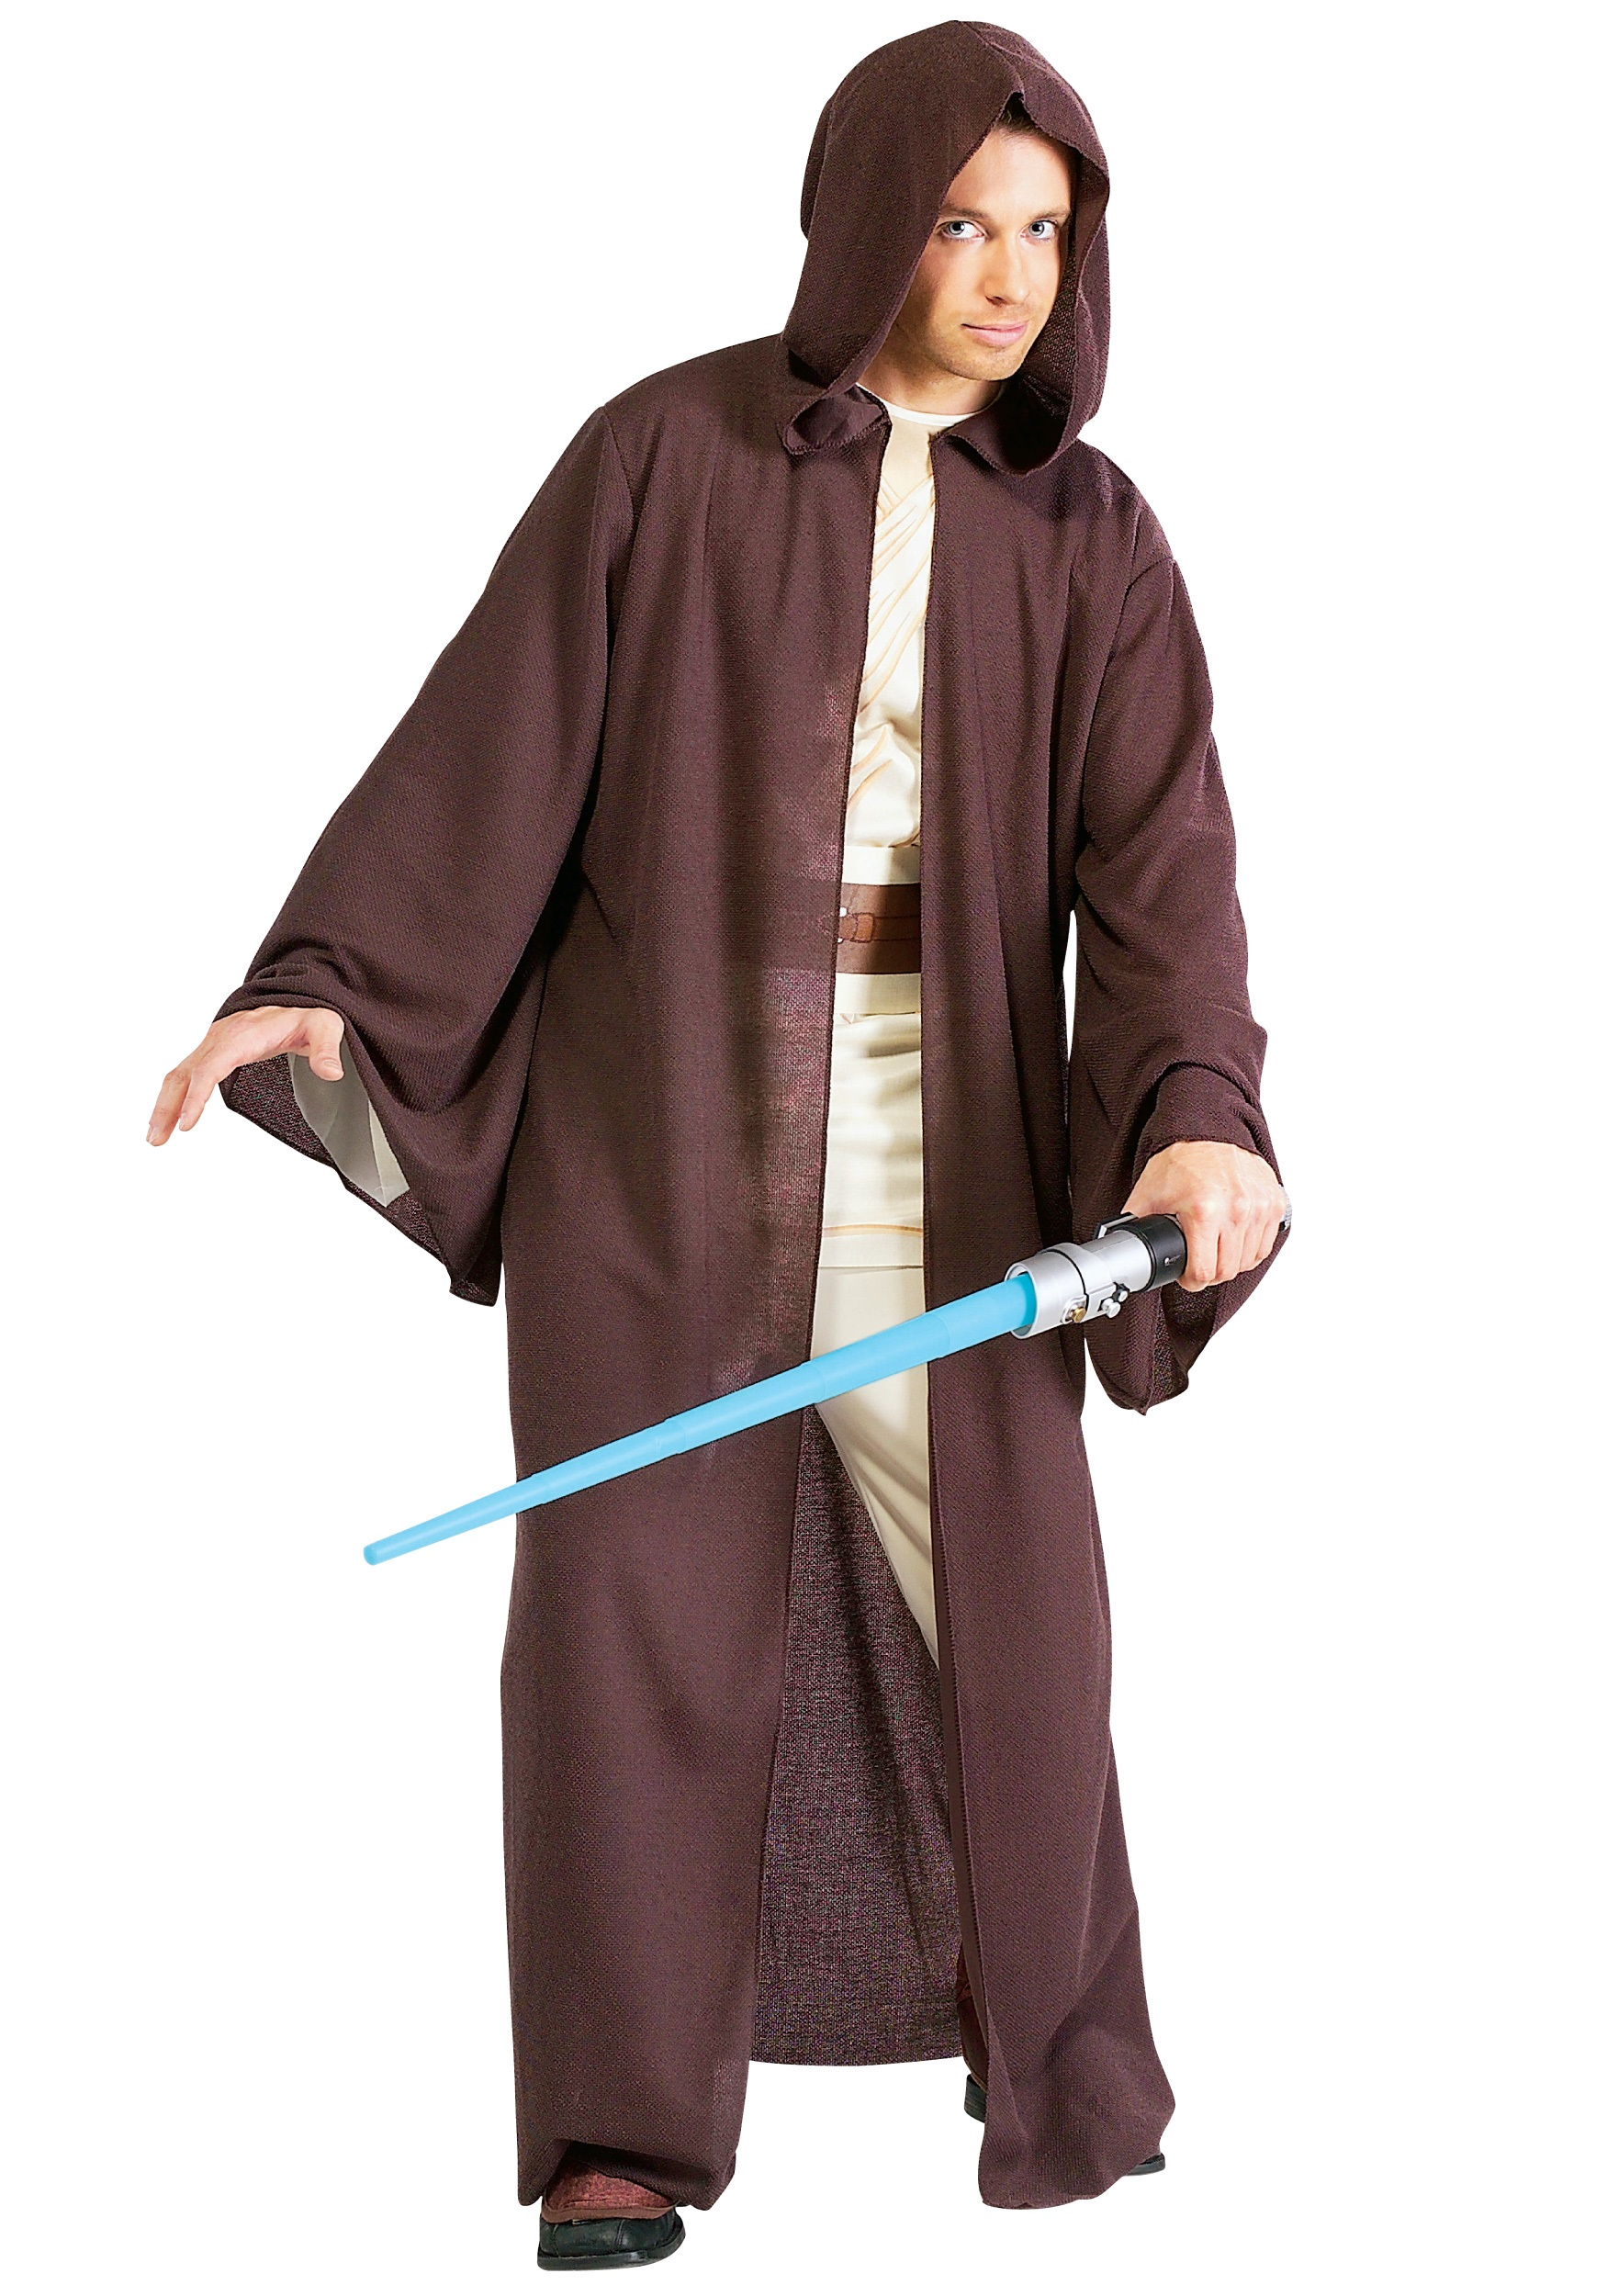 Deluxe Adult Jedi Robe  sc 1 st  Halloween Costumes & Deluxe Adult Jedi Robe - Star Wars Jedi Robes